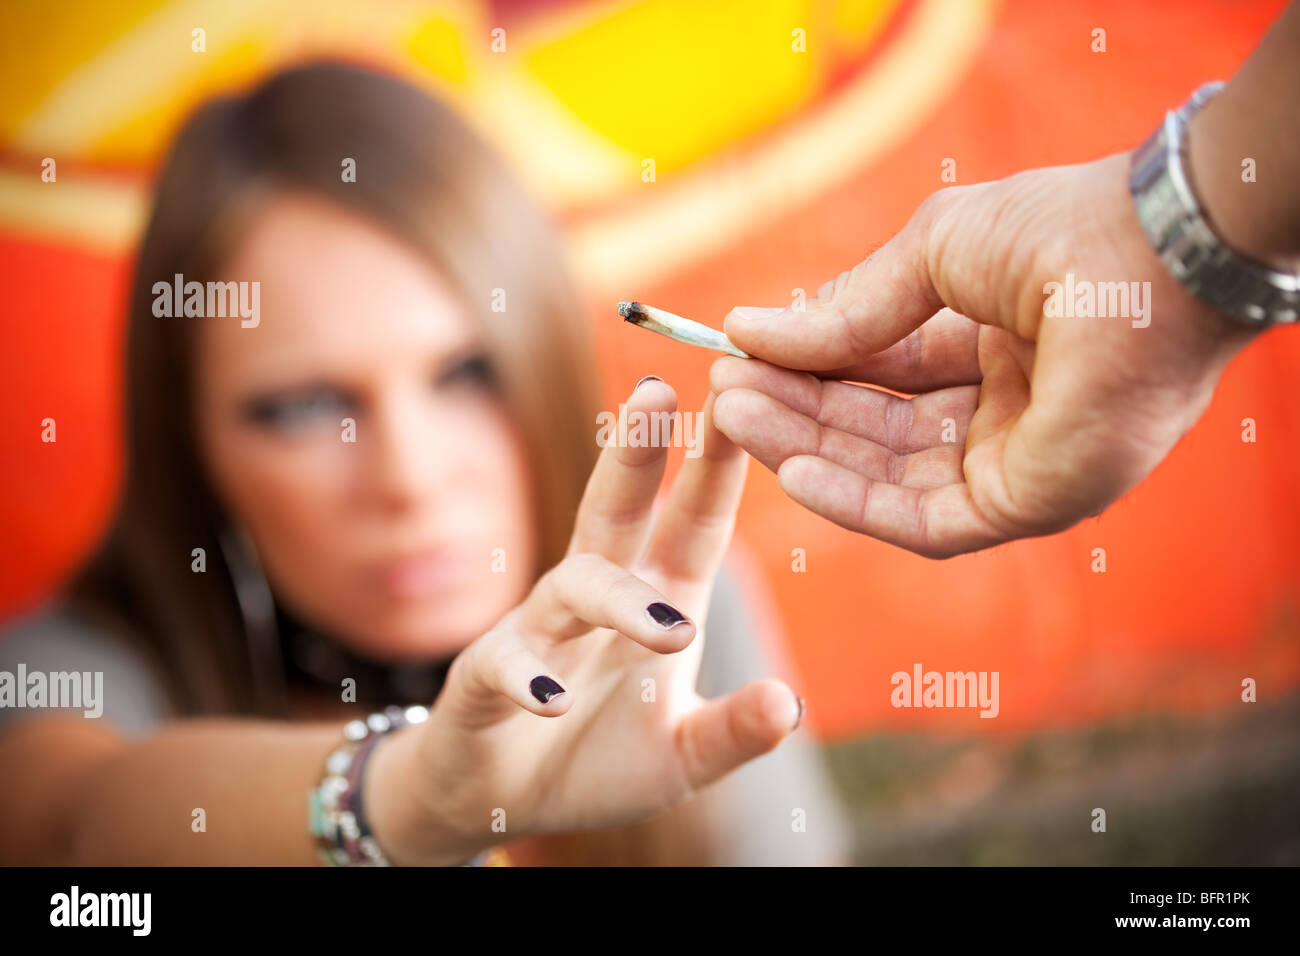 cropped view of two young adults smoking a joint - Stock Image